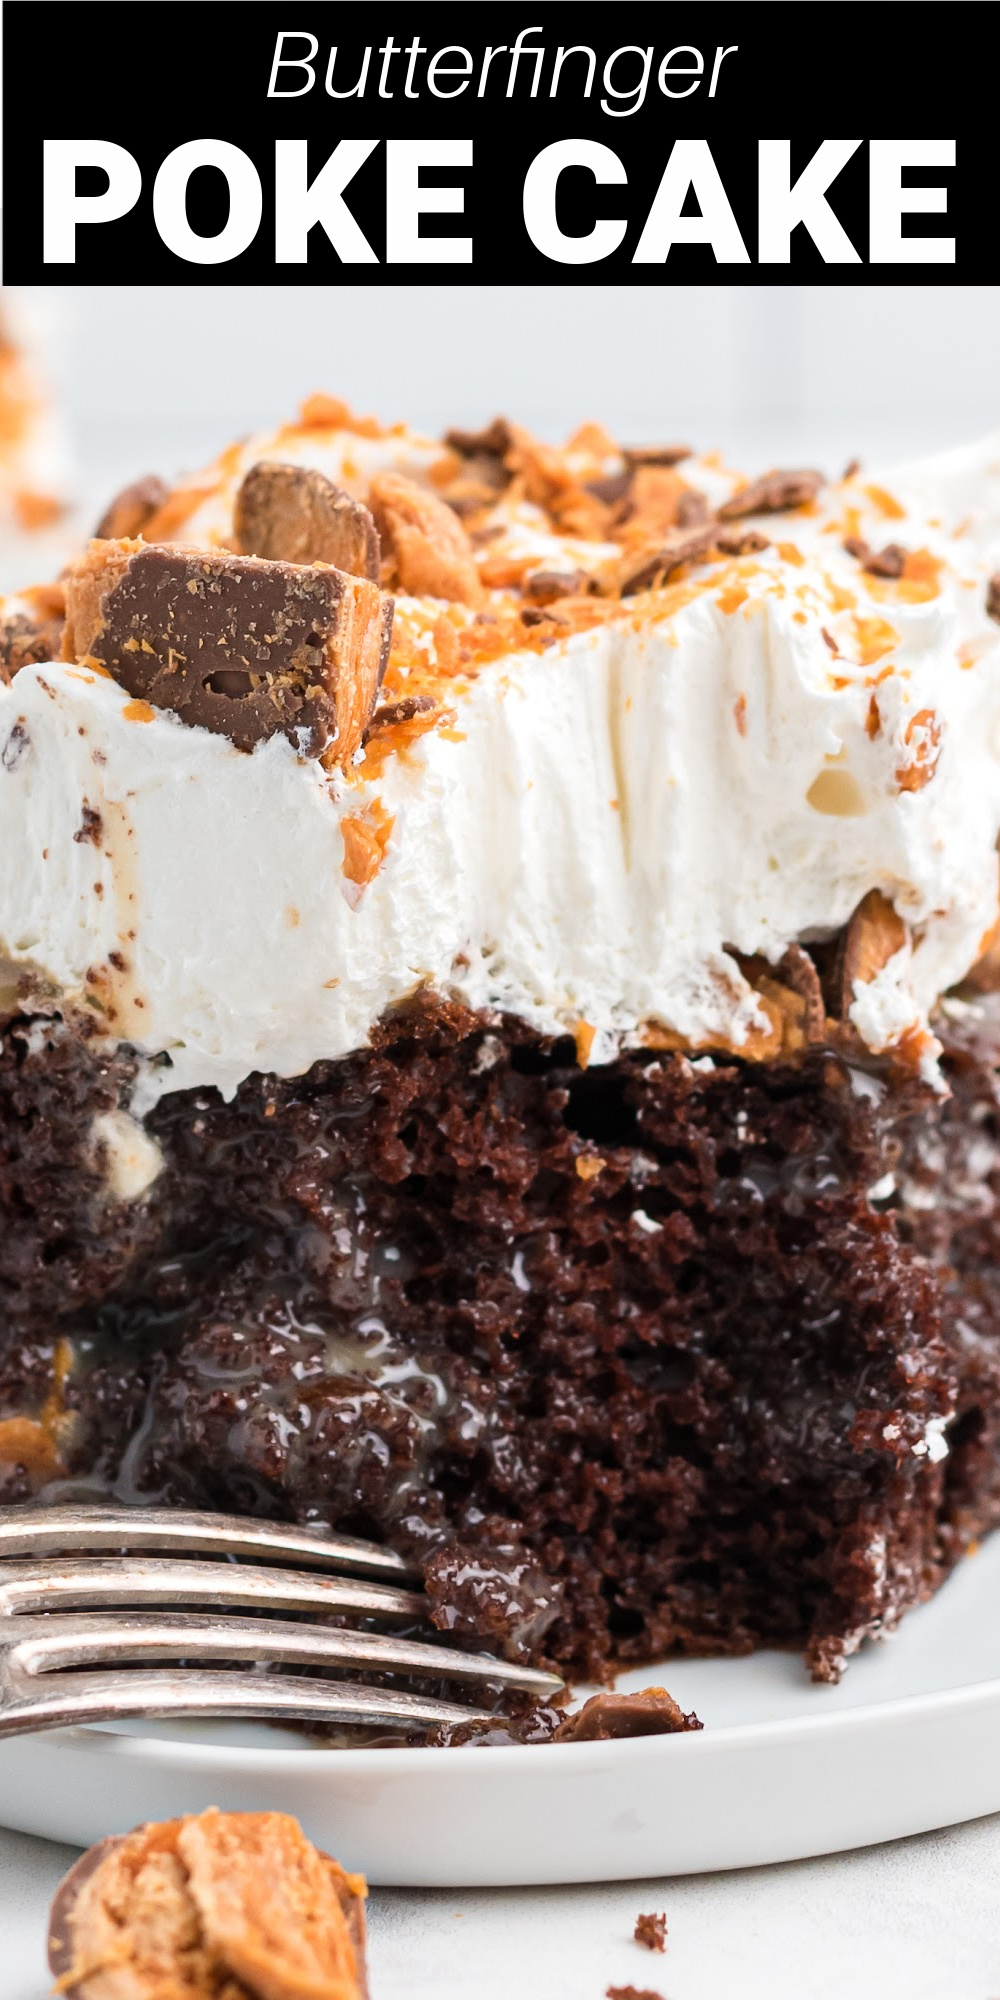 """Butterfinger Poke Cake is a chocolate cake with a rich, gooey caramel sauce and topped with whipped cream and """"crispety, crunchety"""" Butterfinger candy pieces. Everyone absolutely loves this cake and it's always a huge hit!"""